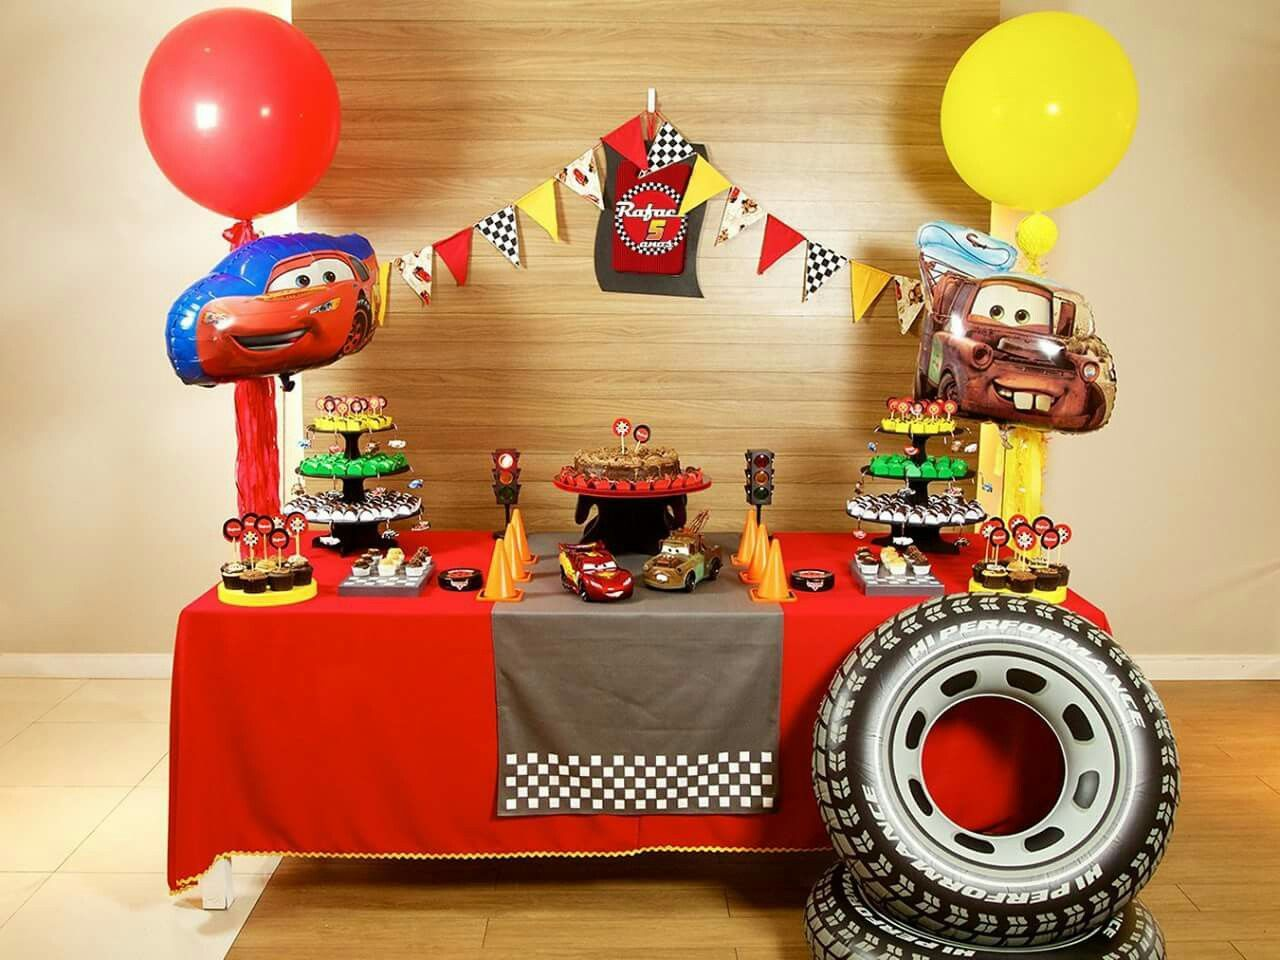 20 Ideas De Decoracion Fiesta Infantil Cars Decoracion De Cars Fiestas Decoracion De Cars Decoracion De Fiestas Infantiles